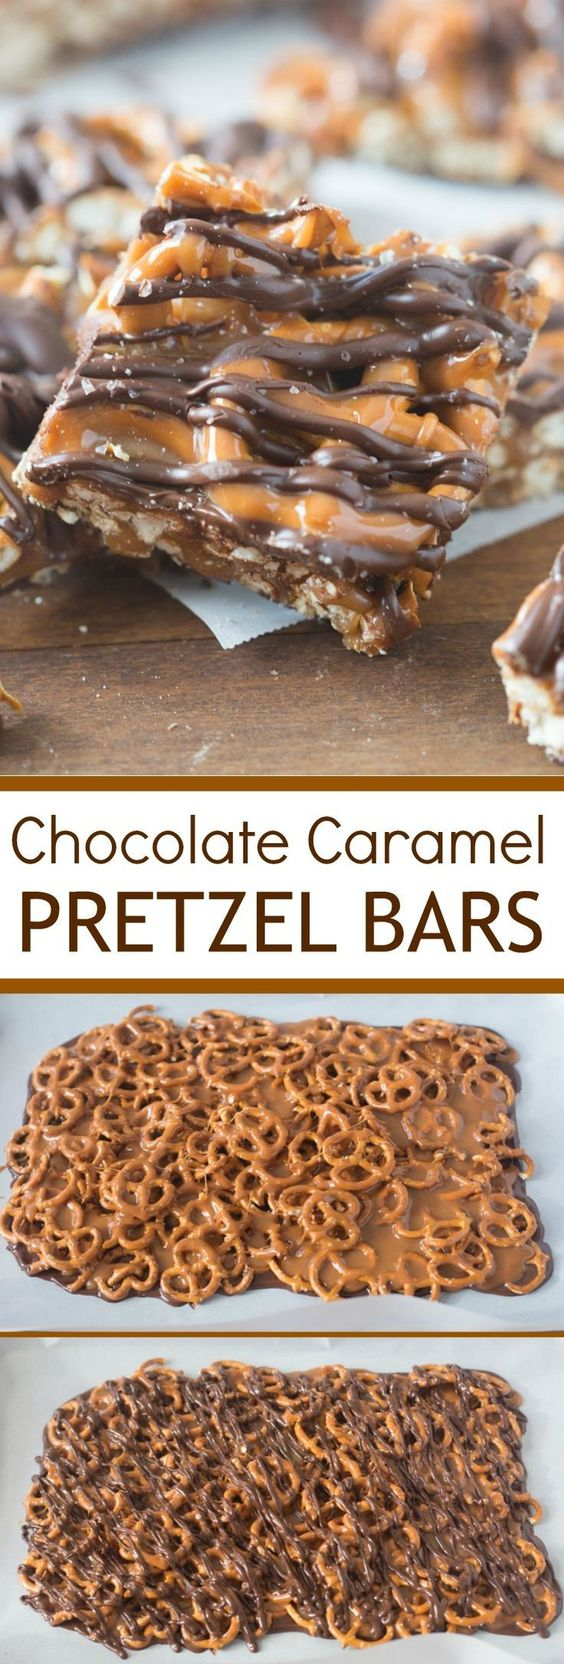 The Best Easy Desserts Bars Recipes – Favorite New Plus Classic Simple Bar Cookies and Quick Big Batch Party Treats Bars for a Crowd -   18 desserts For Parties cookies ideas